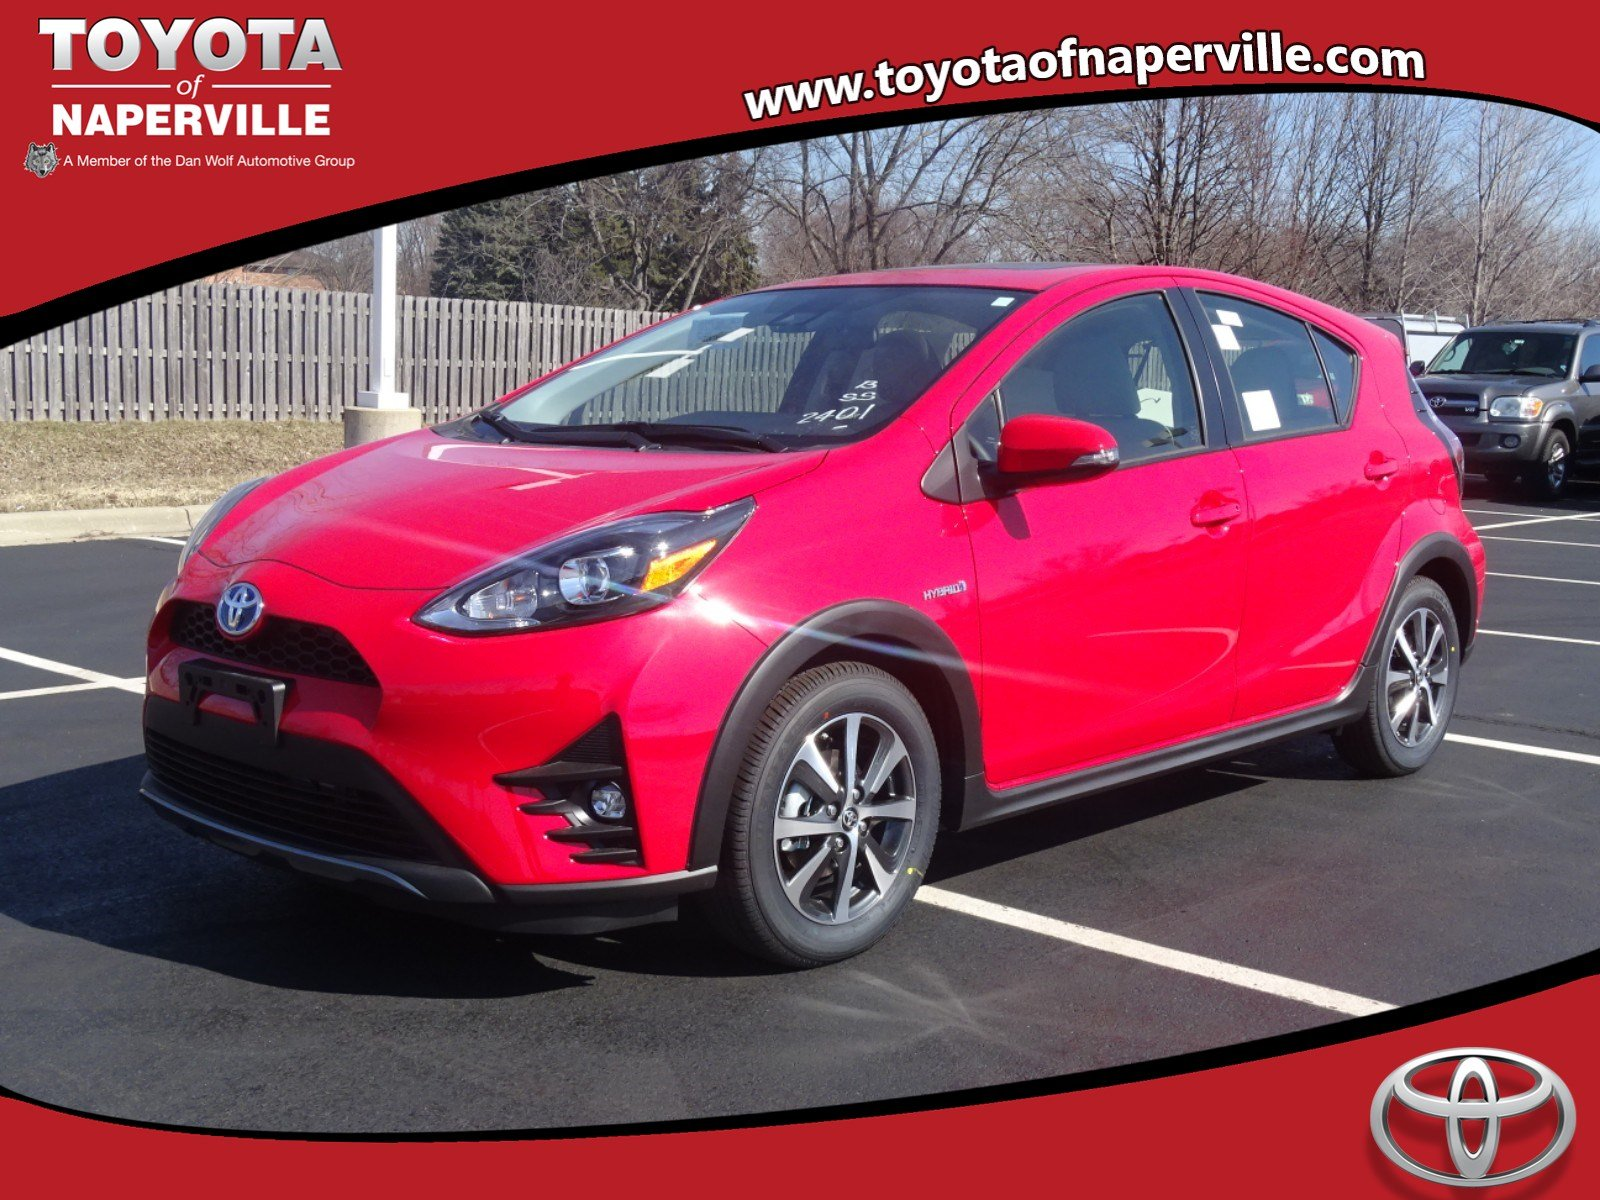 toyota models prius c hatchback car new hybrid priusc showroom